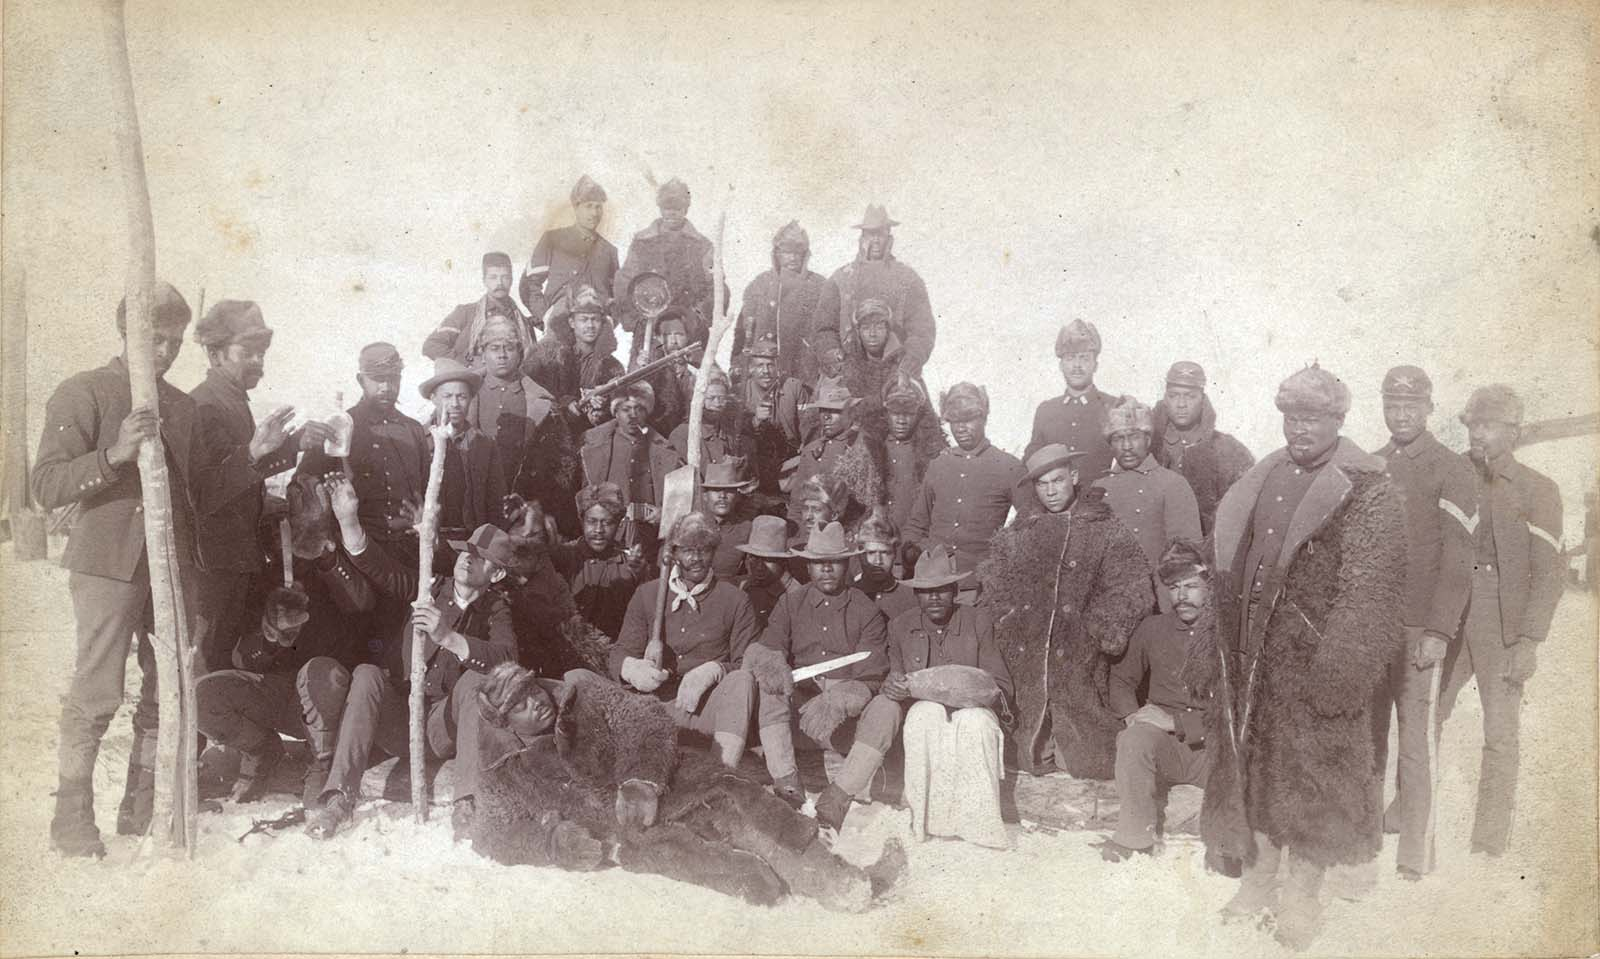 Buffalo soldiers of the 25th Infantry, Ft. Keogh, Montana, 1890. Library of Congress Prints and Photographs Division, Washington, DC 20540 USA. LC-DIG-ppmsca-11406